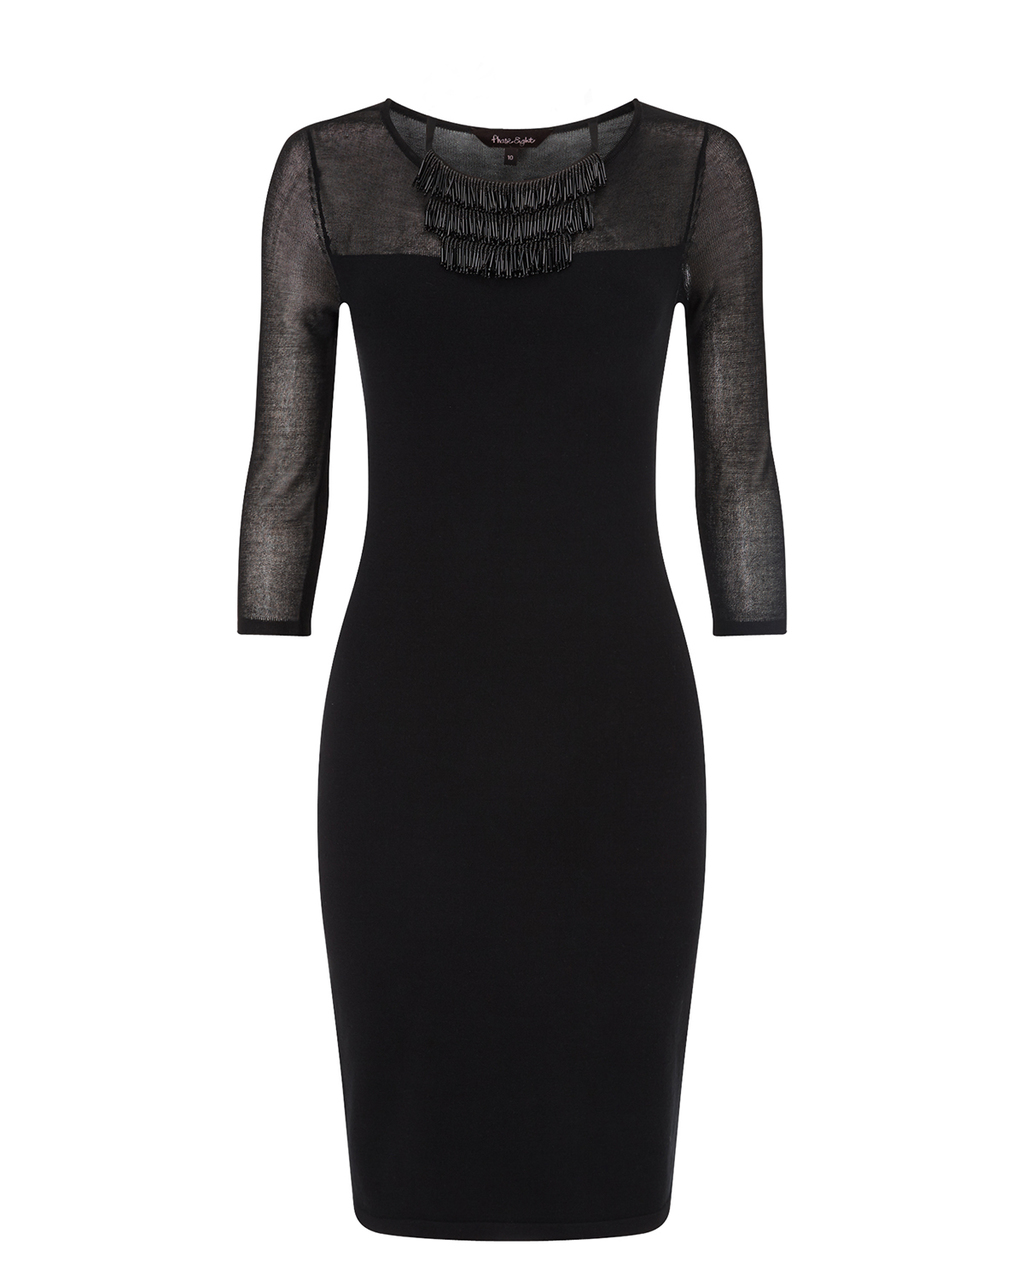 Darlene Necklace Dress - neckline: round neck; fit: tight; pattern: plain; style: bodycon; bust detail: sheer at bust; predominant colour: black; occasions: evening; length: on the knee; fibres: viscose/rayon - stretch; sleeve length: 3/4 length; sleeve style: standard; texture group: jersey - clingy; pattern type: fabric; season: a/w 2015; wardrobe: event